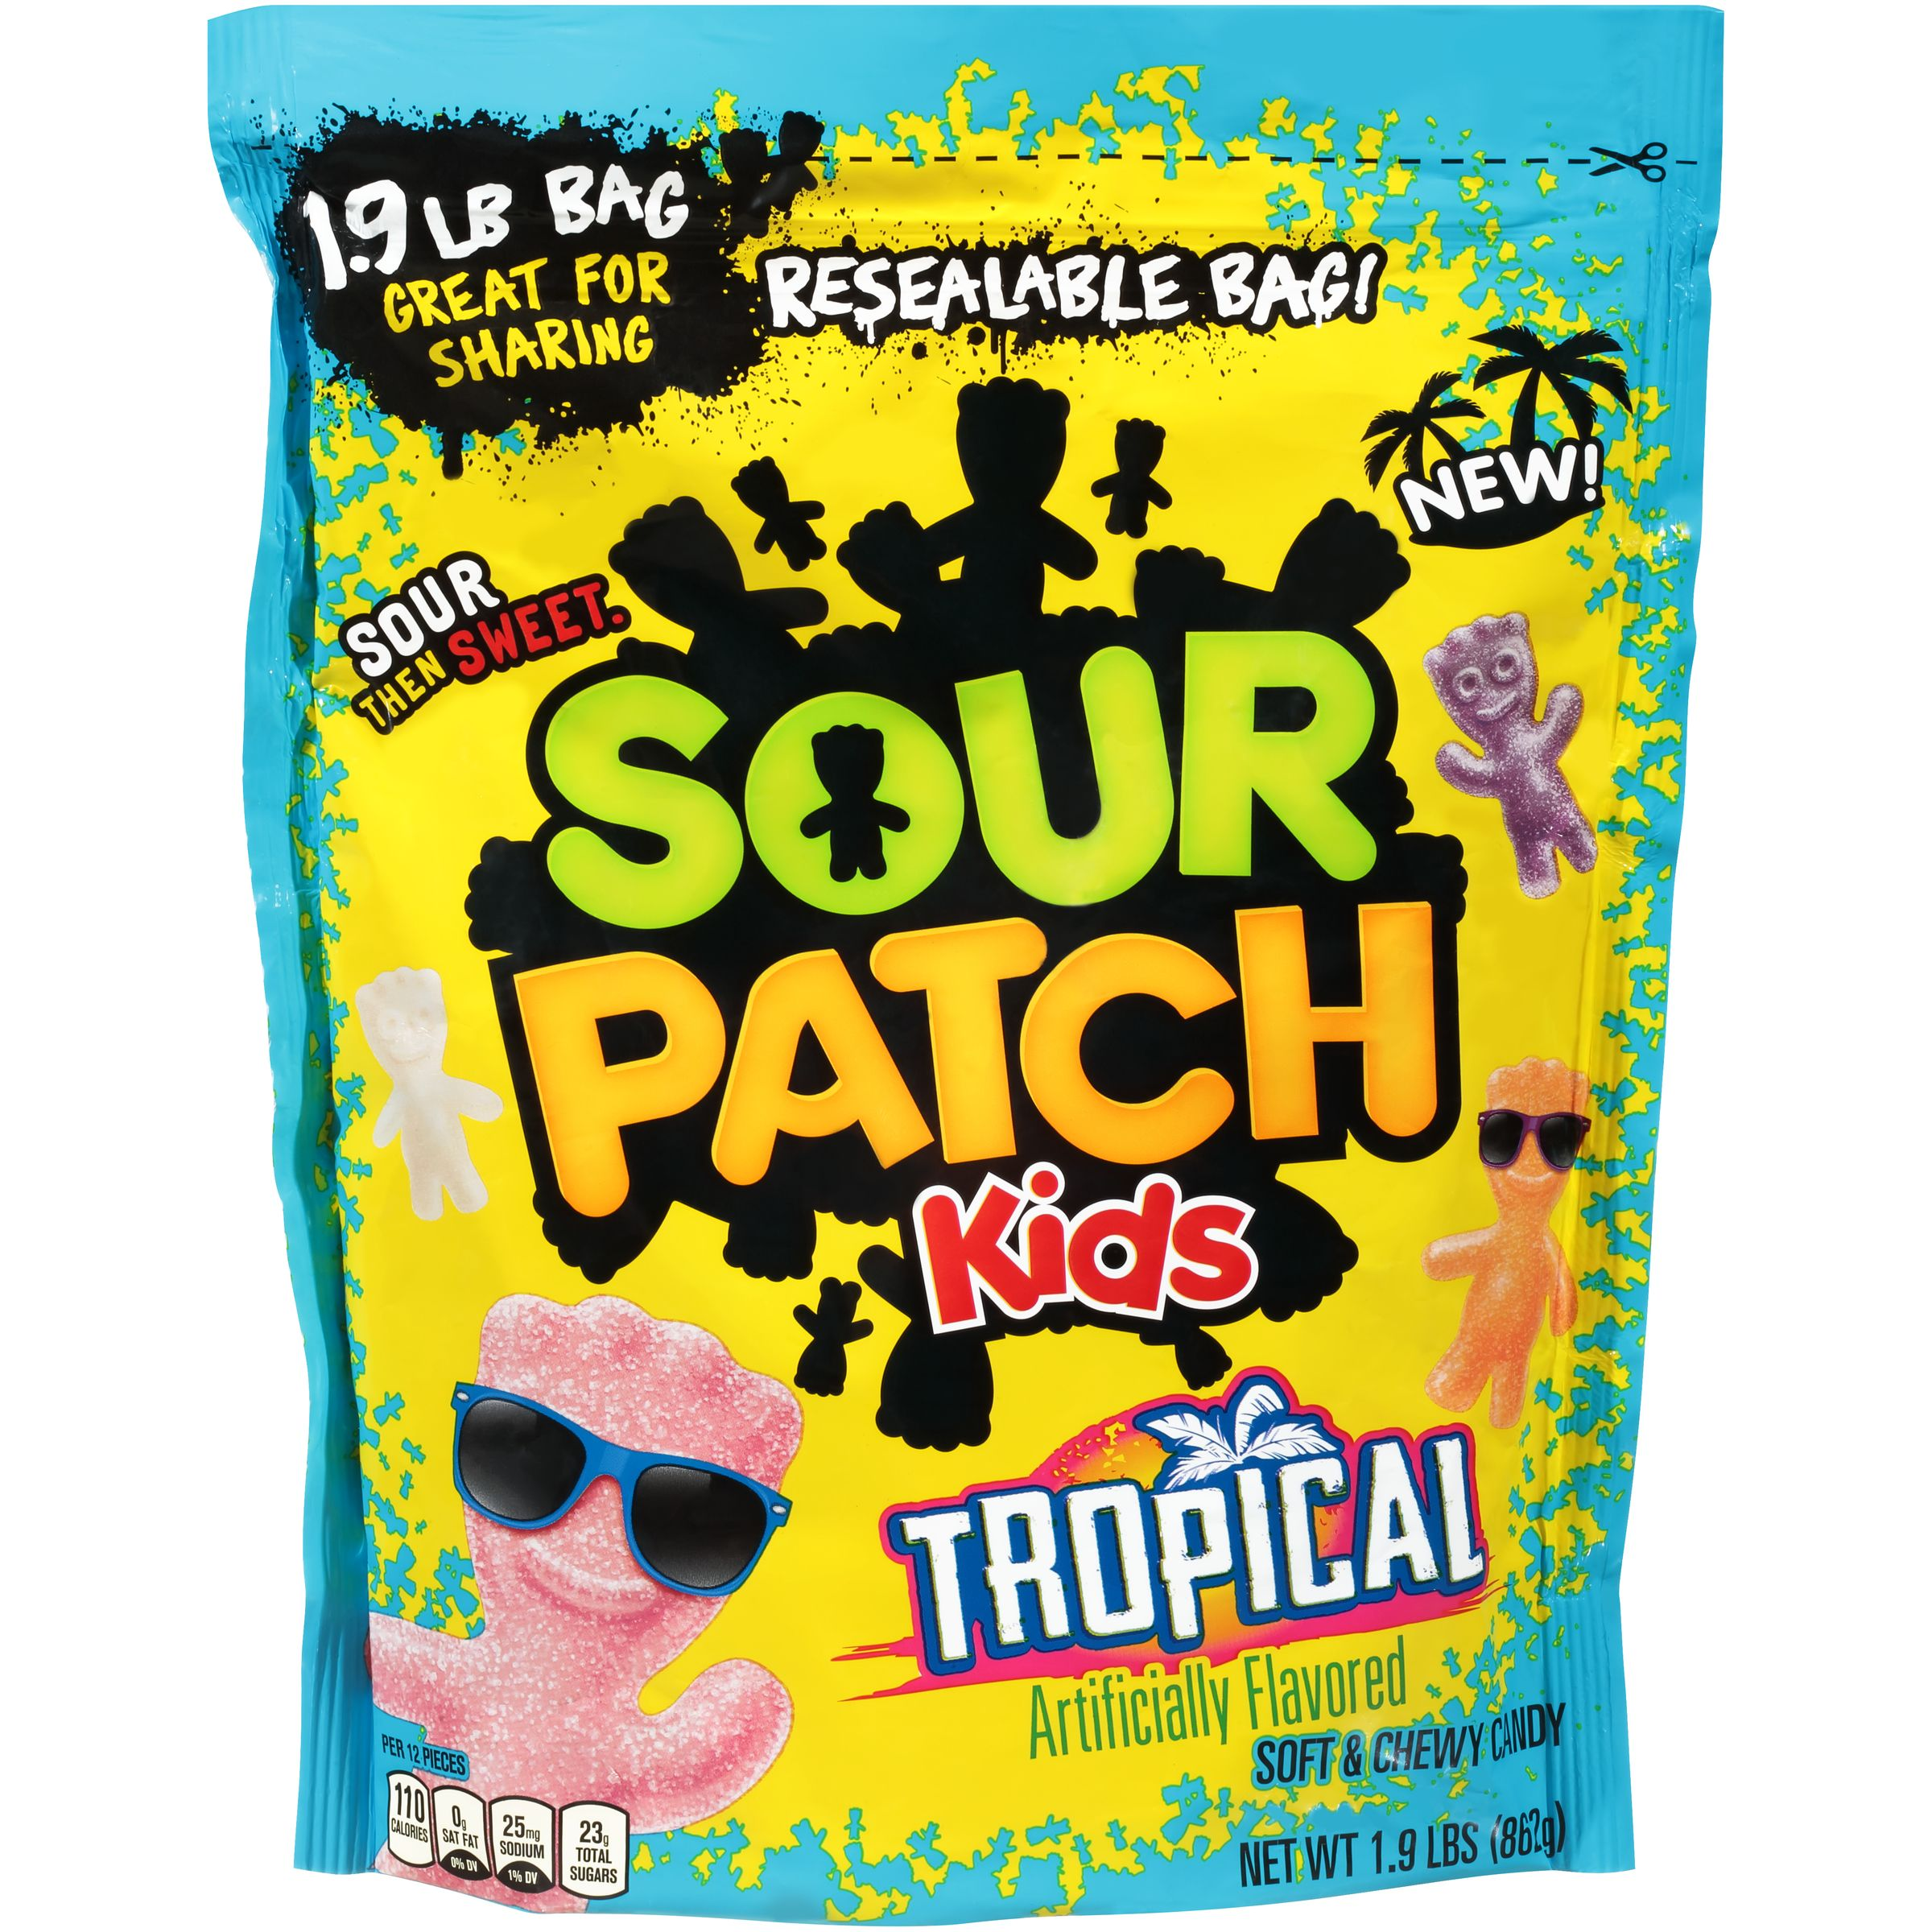 Sour Patch Kids Tropical Soft & Chewy Candies, 1.9 Lb.